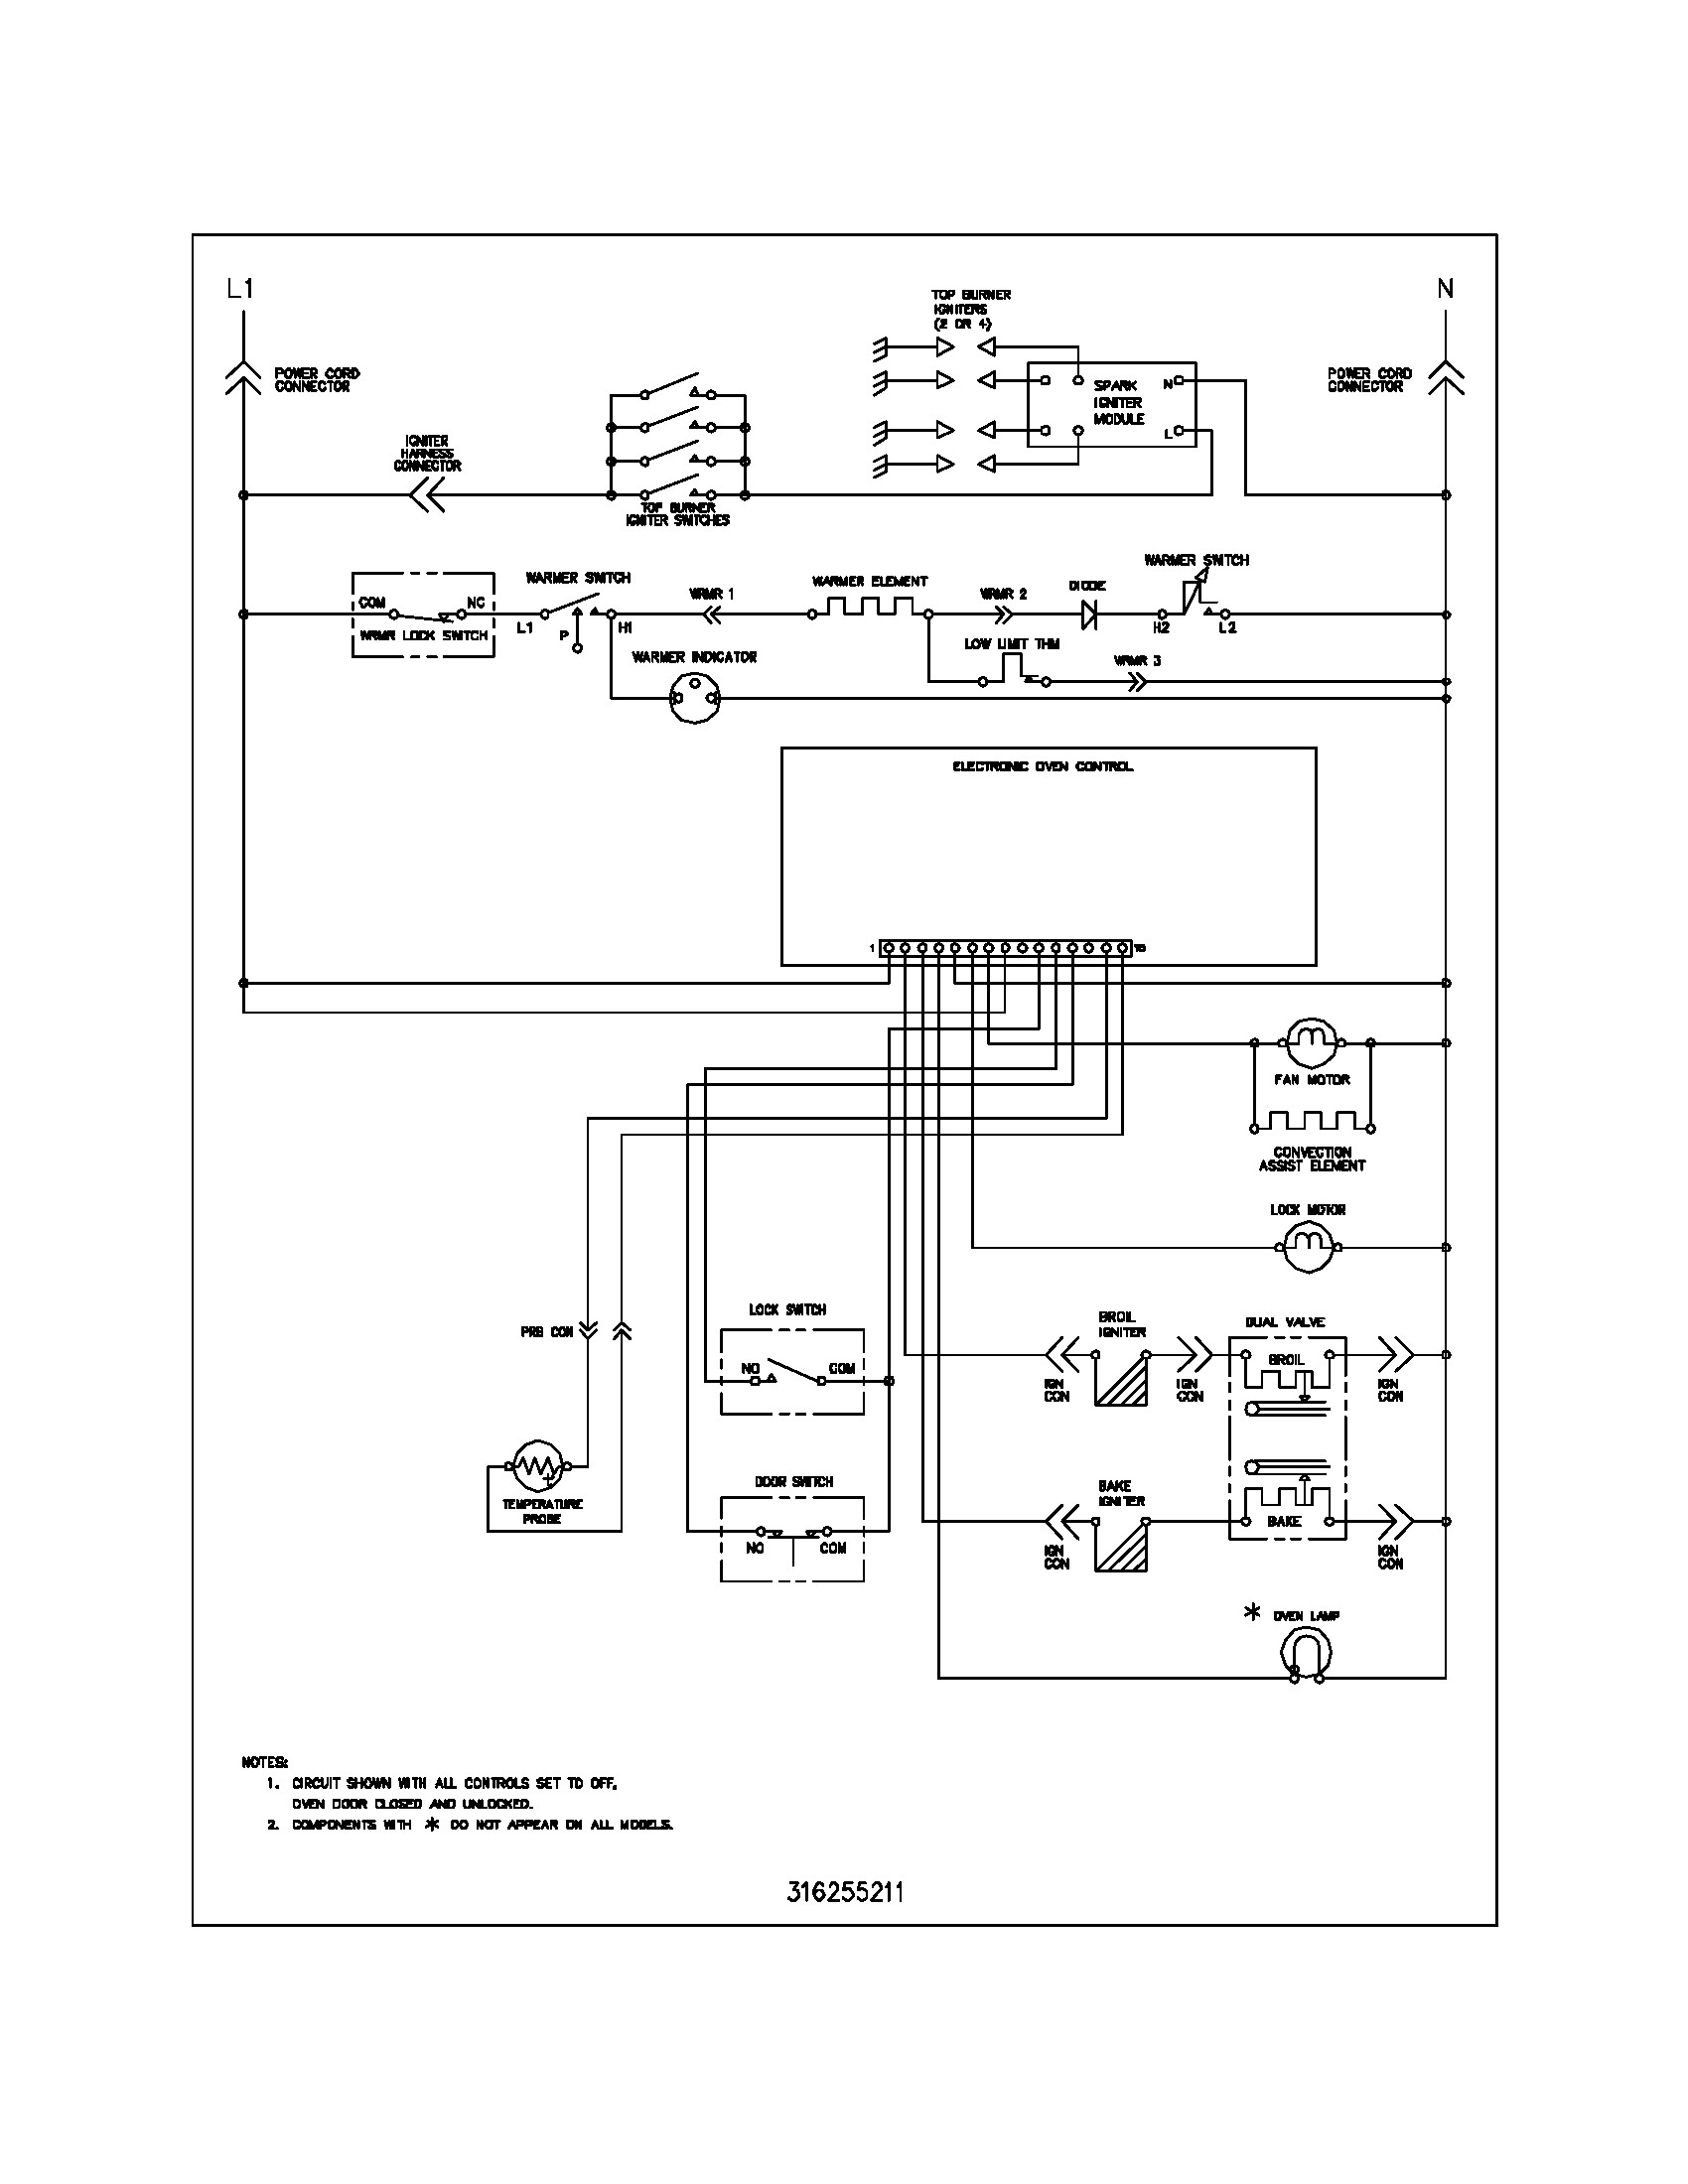 Goodman Electric Furnace Wiring Diagram Copy Wiring Diagram For - Coleman Electric Furnace Wiring Diagram